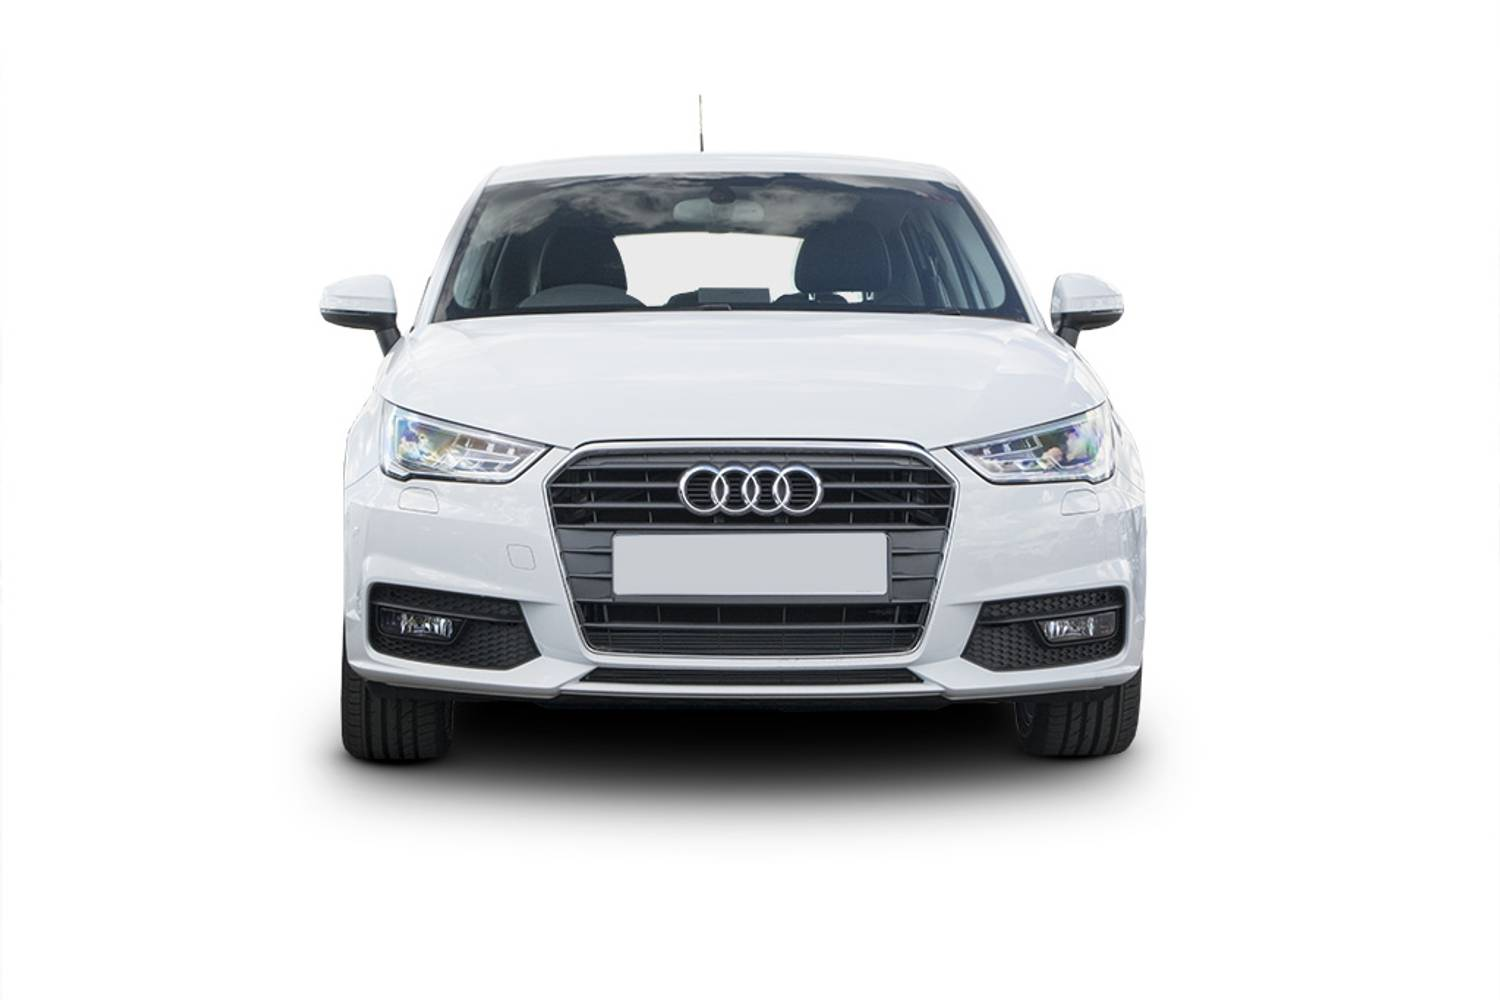 new audi a1 sportback special editions 1 6 tdi black edition nav 5 door s tronic 2017 for sale. Black Bedroom Furniture Sets. Home Design Ideas